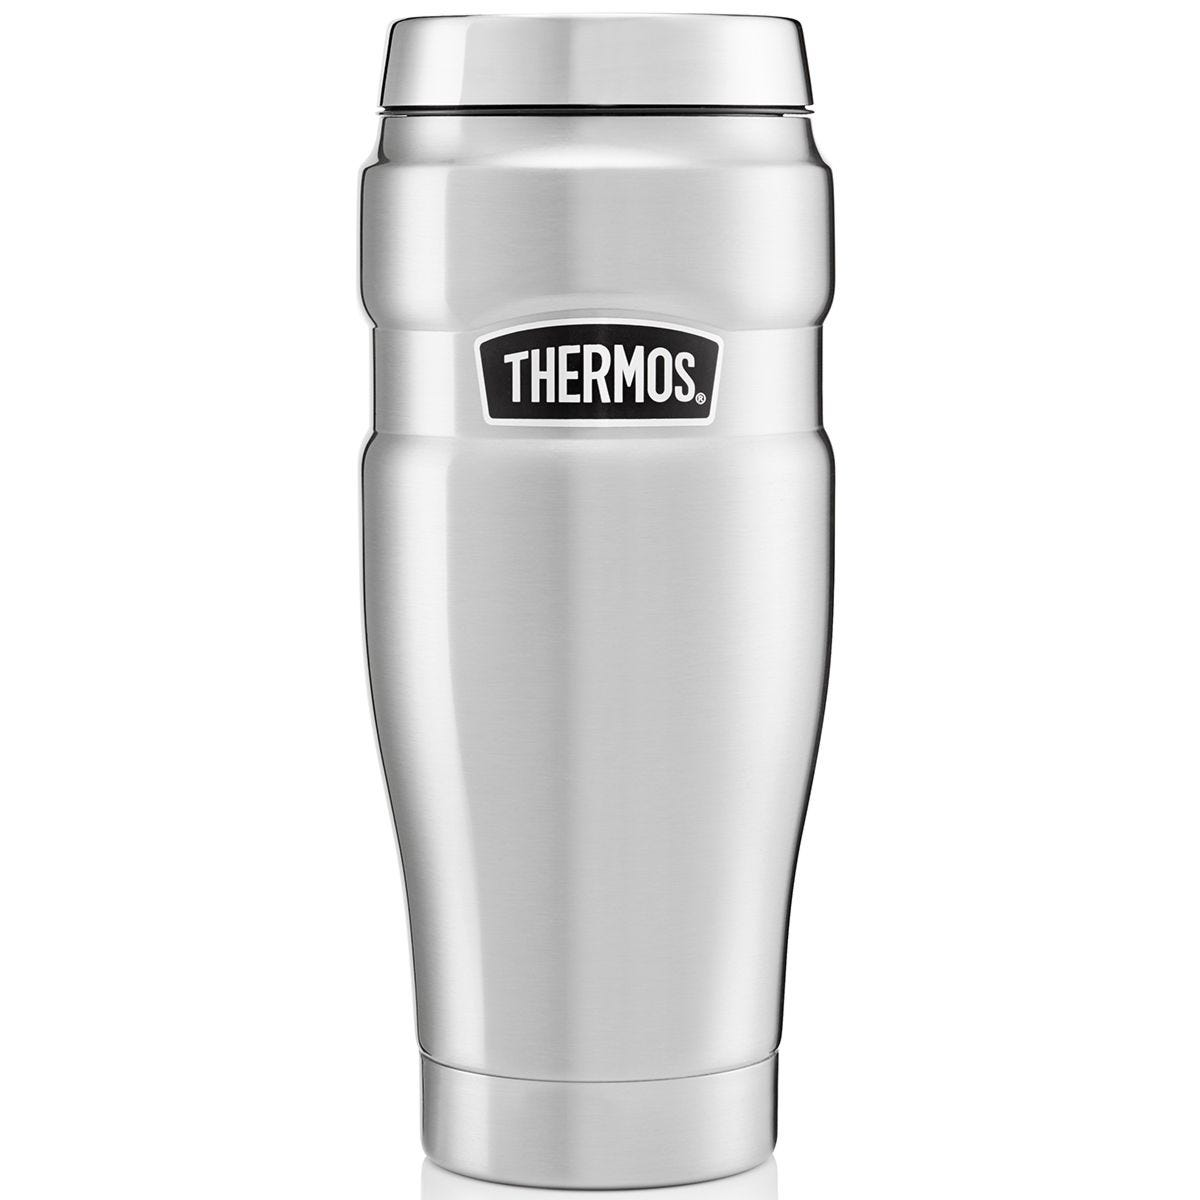 Thermos Stainless King Tumbler 470ml - Stainless Steel